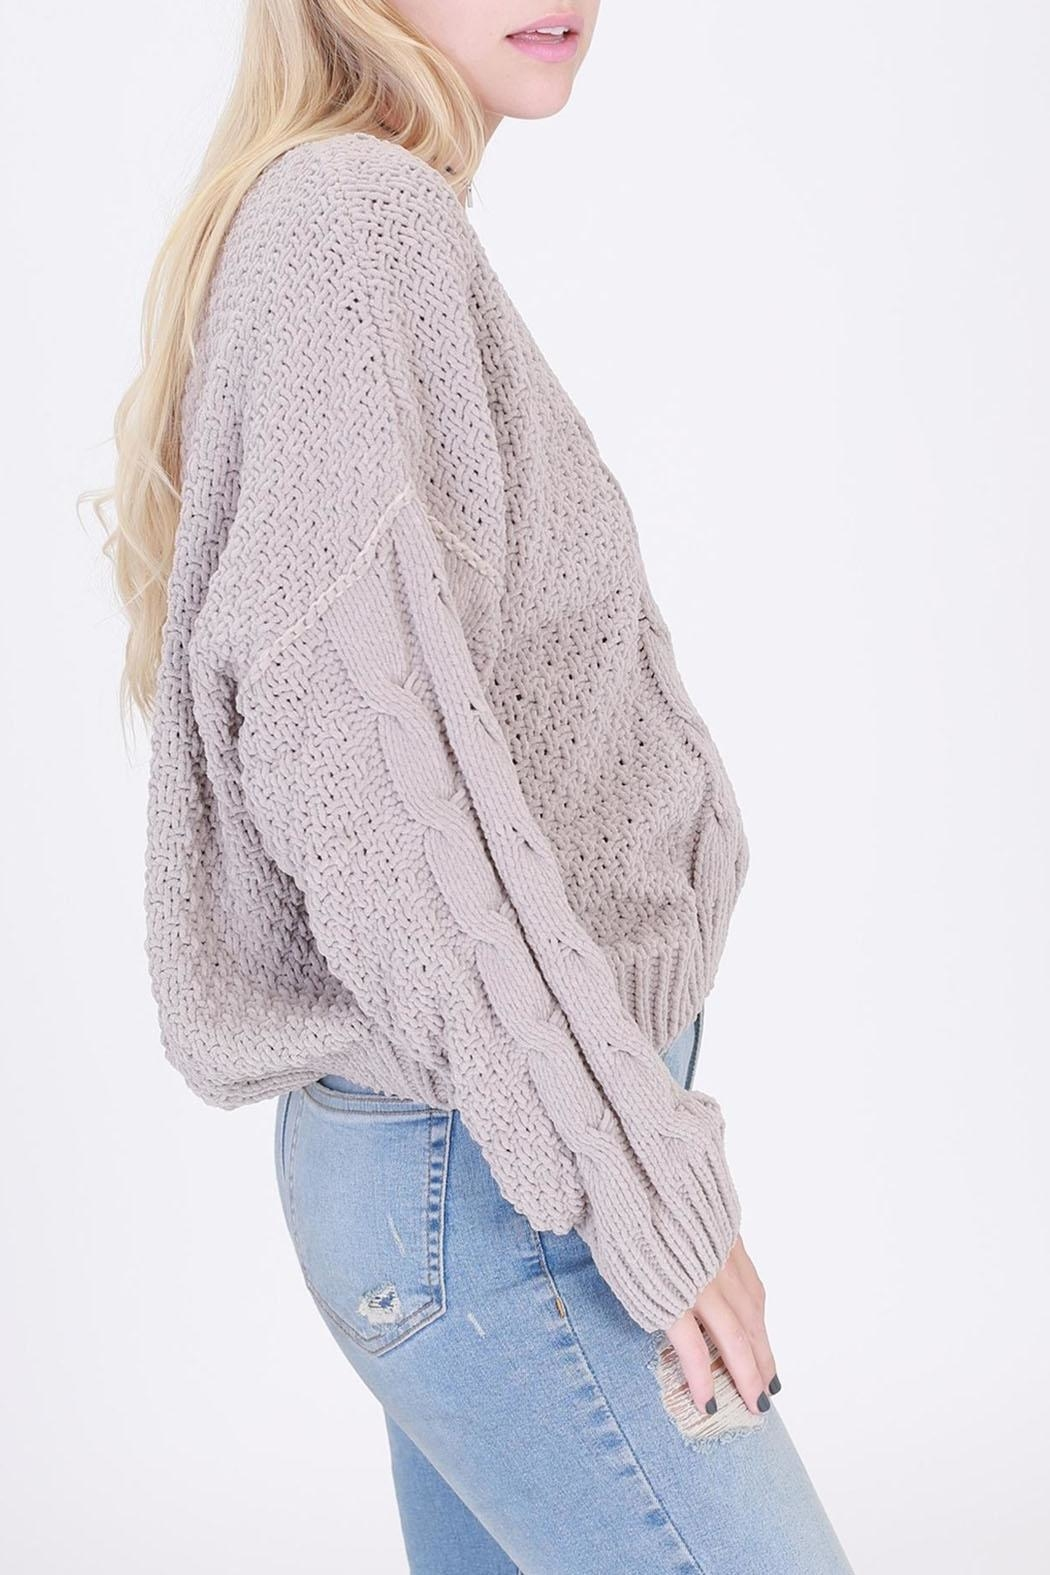 HYFVE Pullover Cropped Sweater - Side Cropped Image